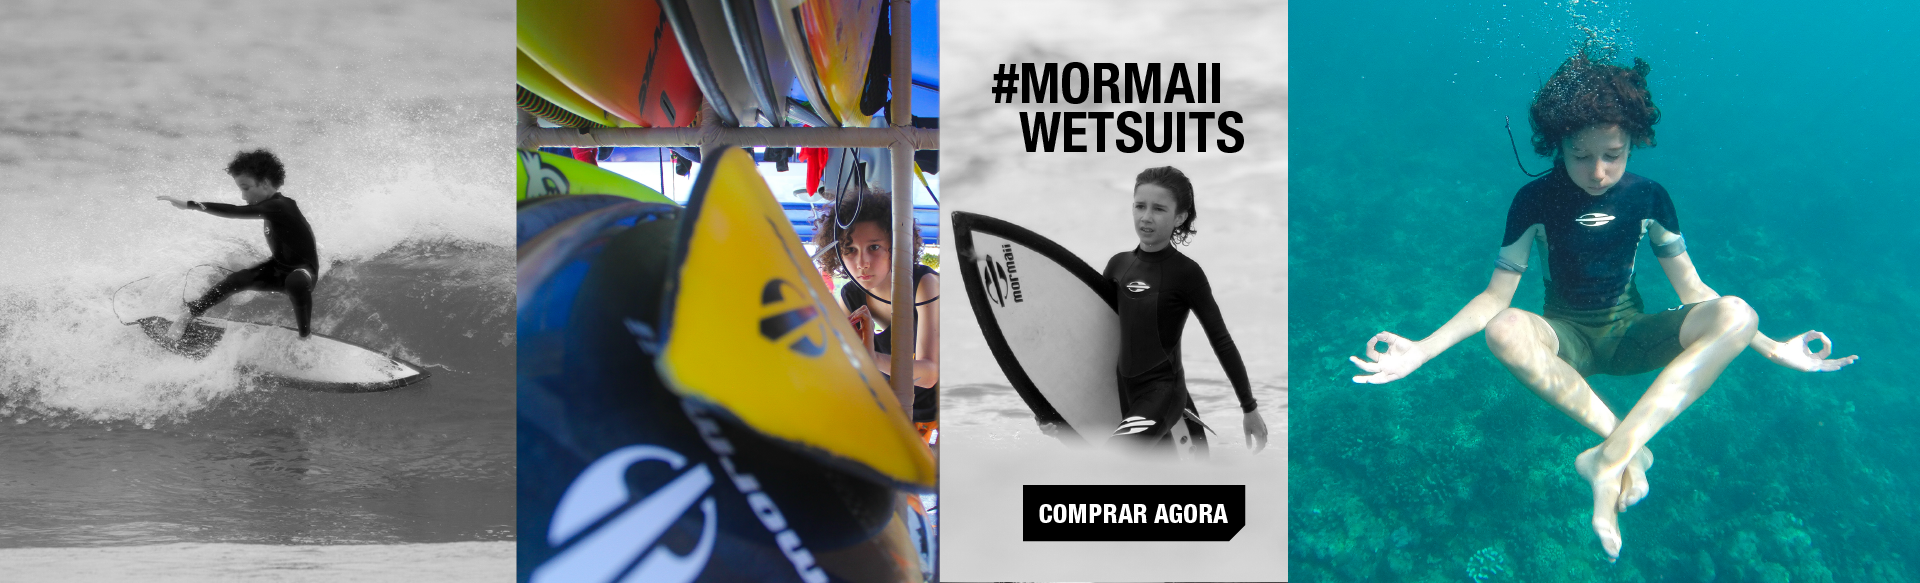 MormaiiWetsuits-NXT